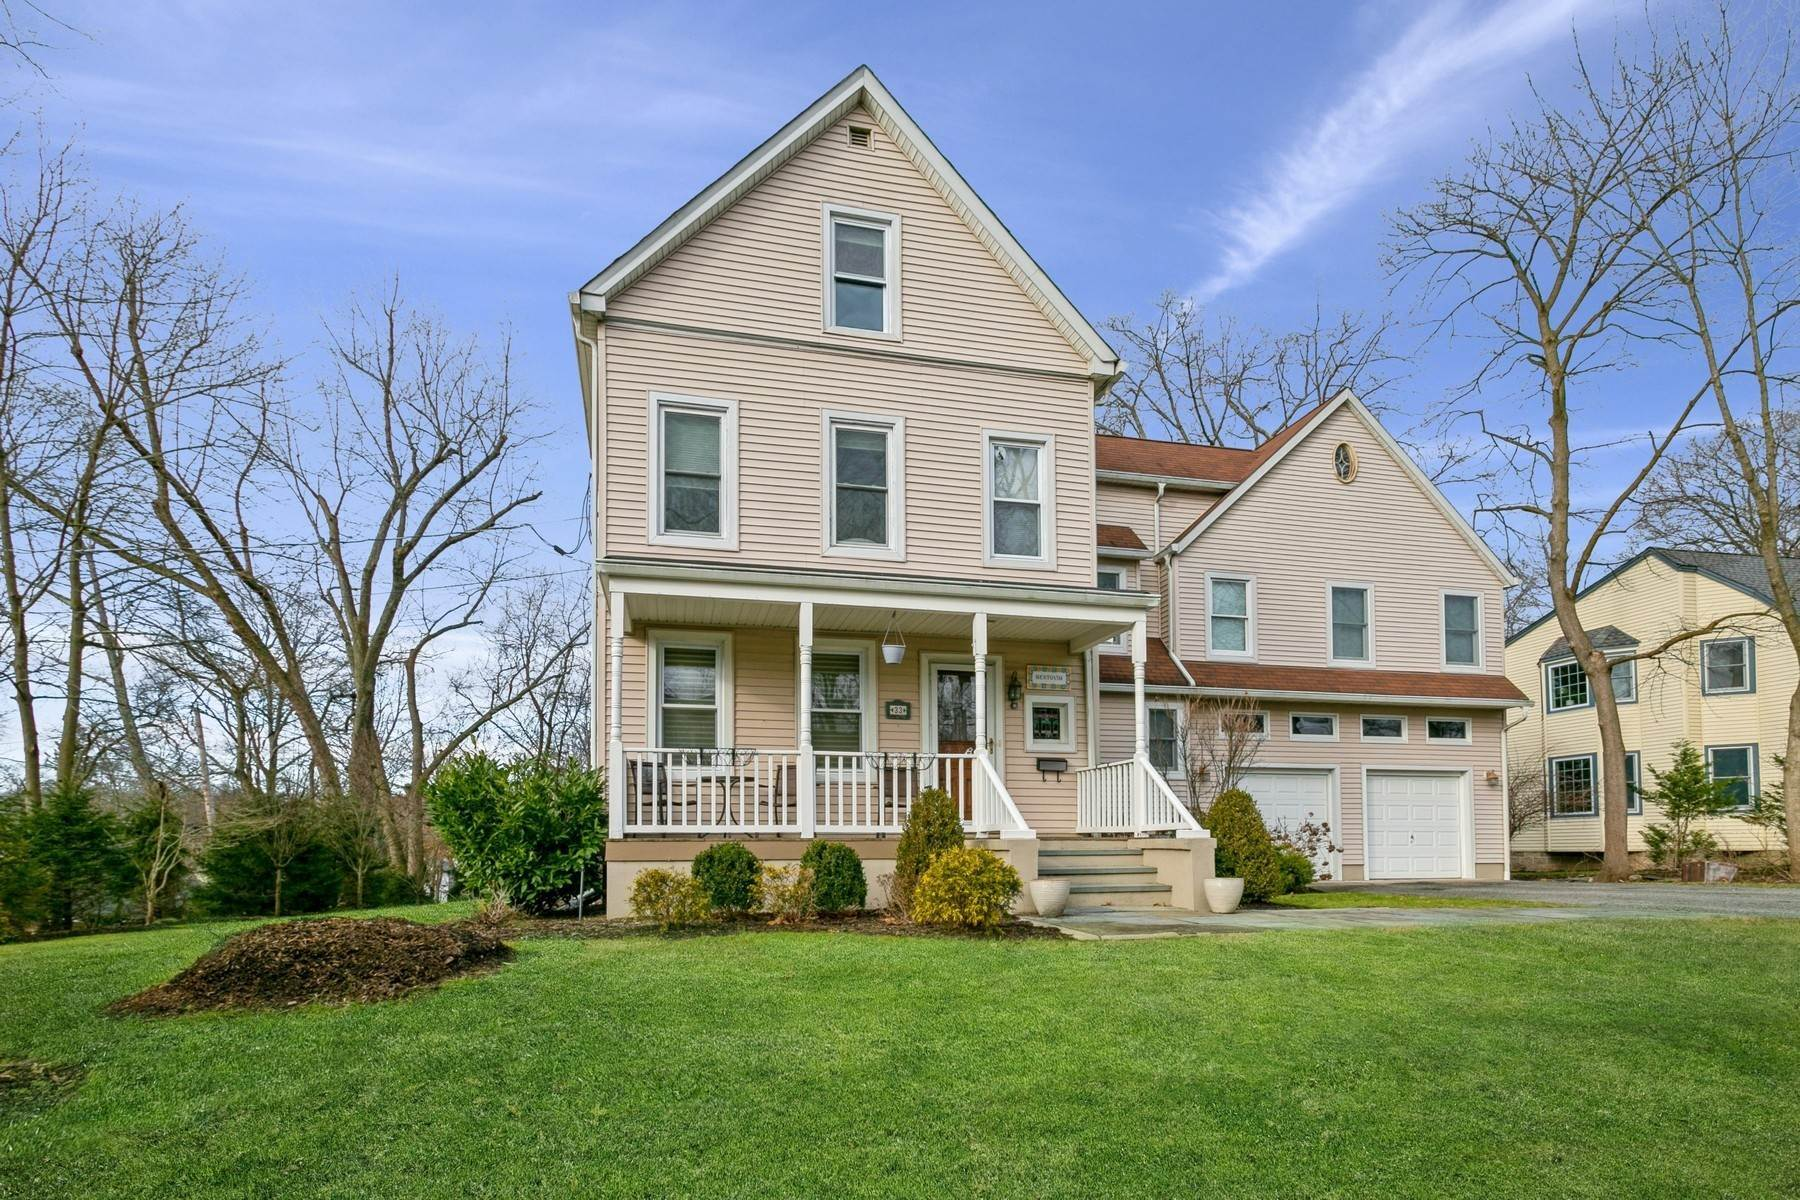 Single Family Homes for Sale at Magical Home! 33 Blanche Ave Demarest, New Jersey 07627 United States